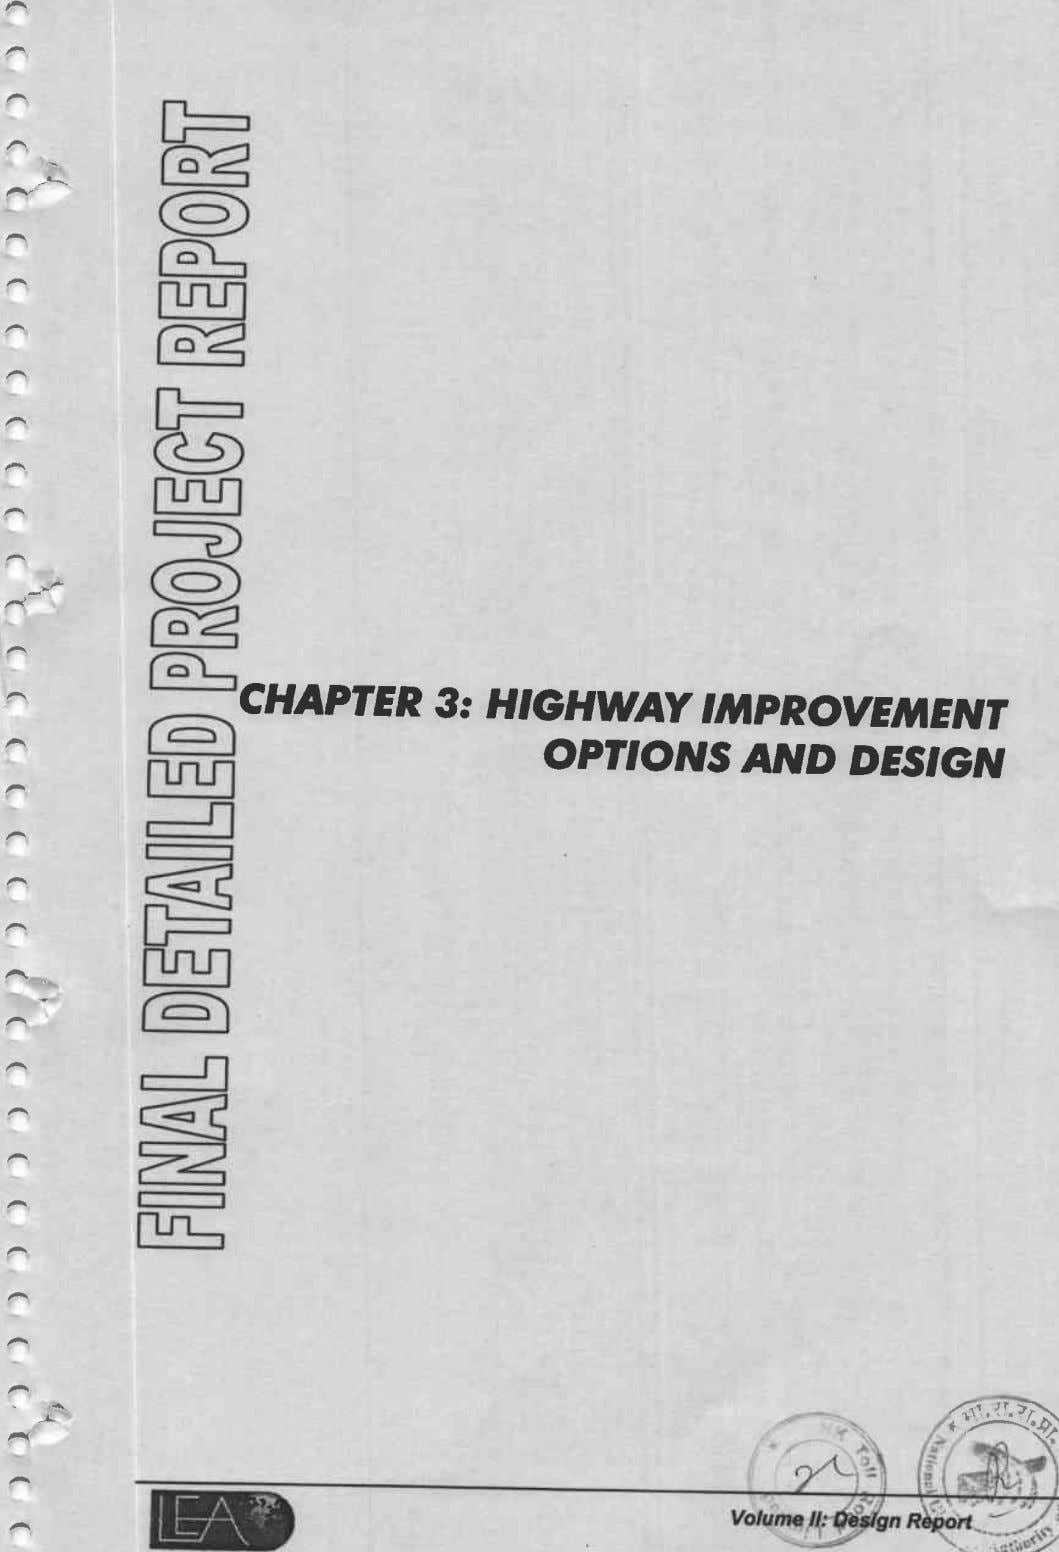 CHAPTER 3: HIGHWAY IMPROVEMENT m OPnONS AND DESIGN